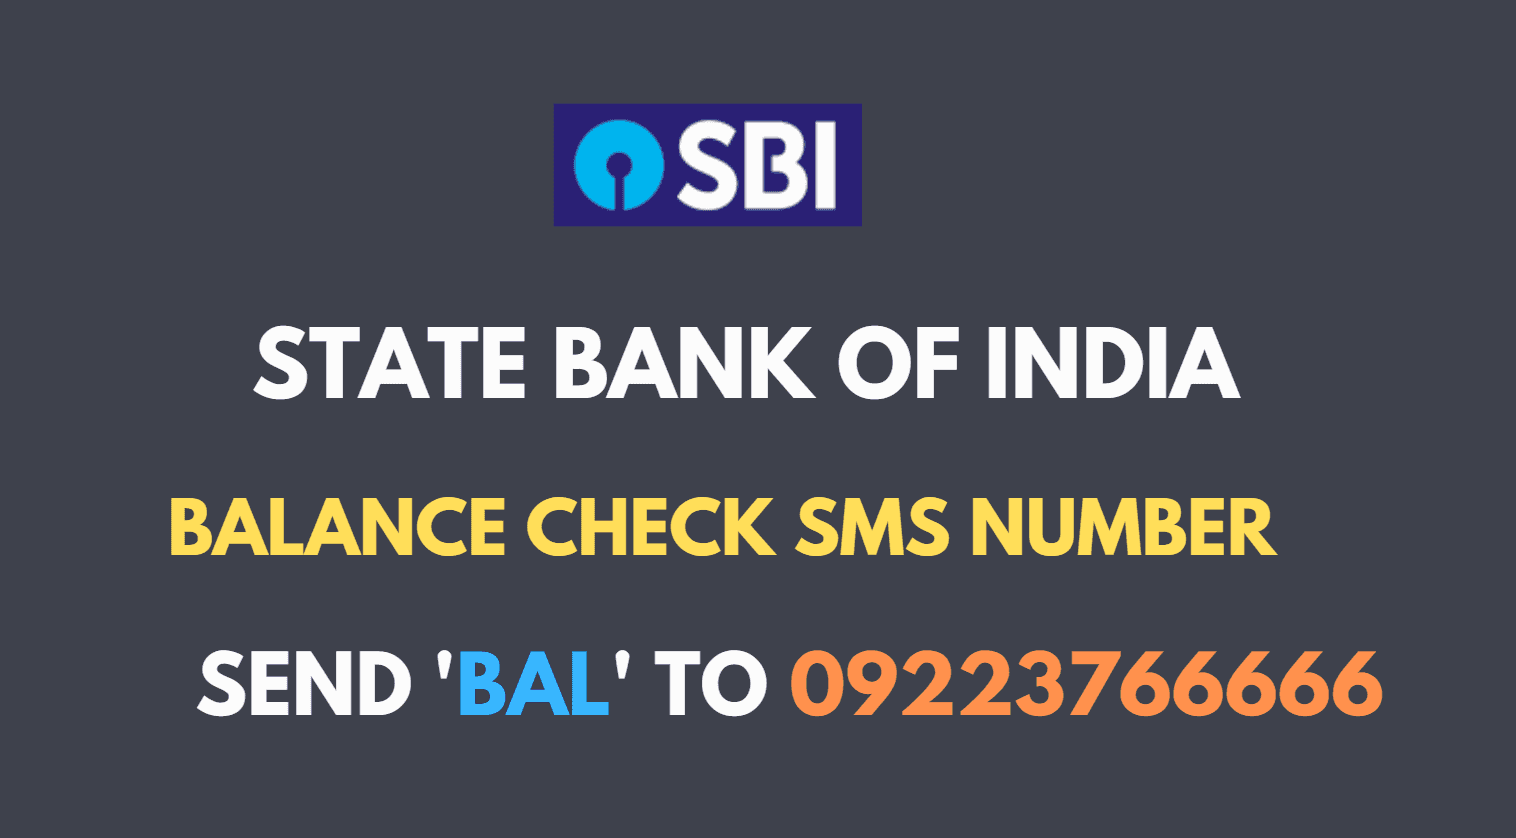 reliacard number to check balance text